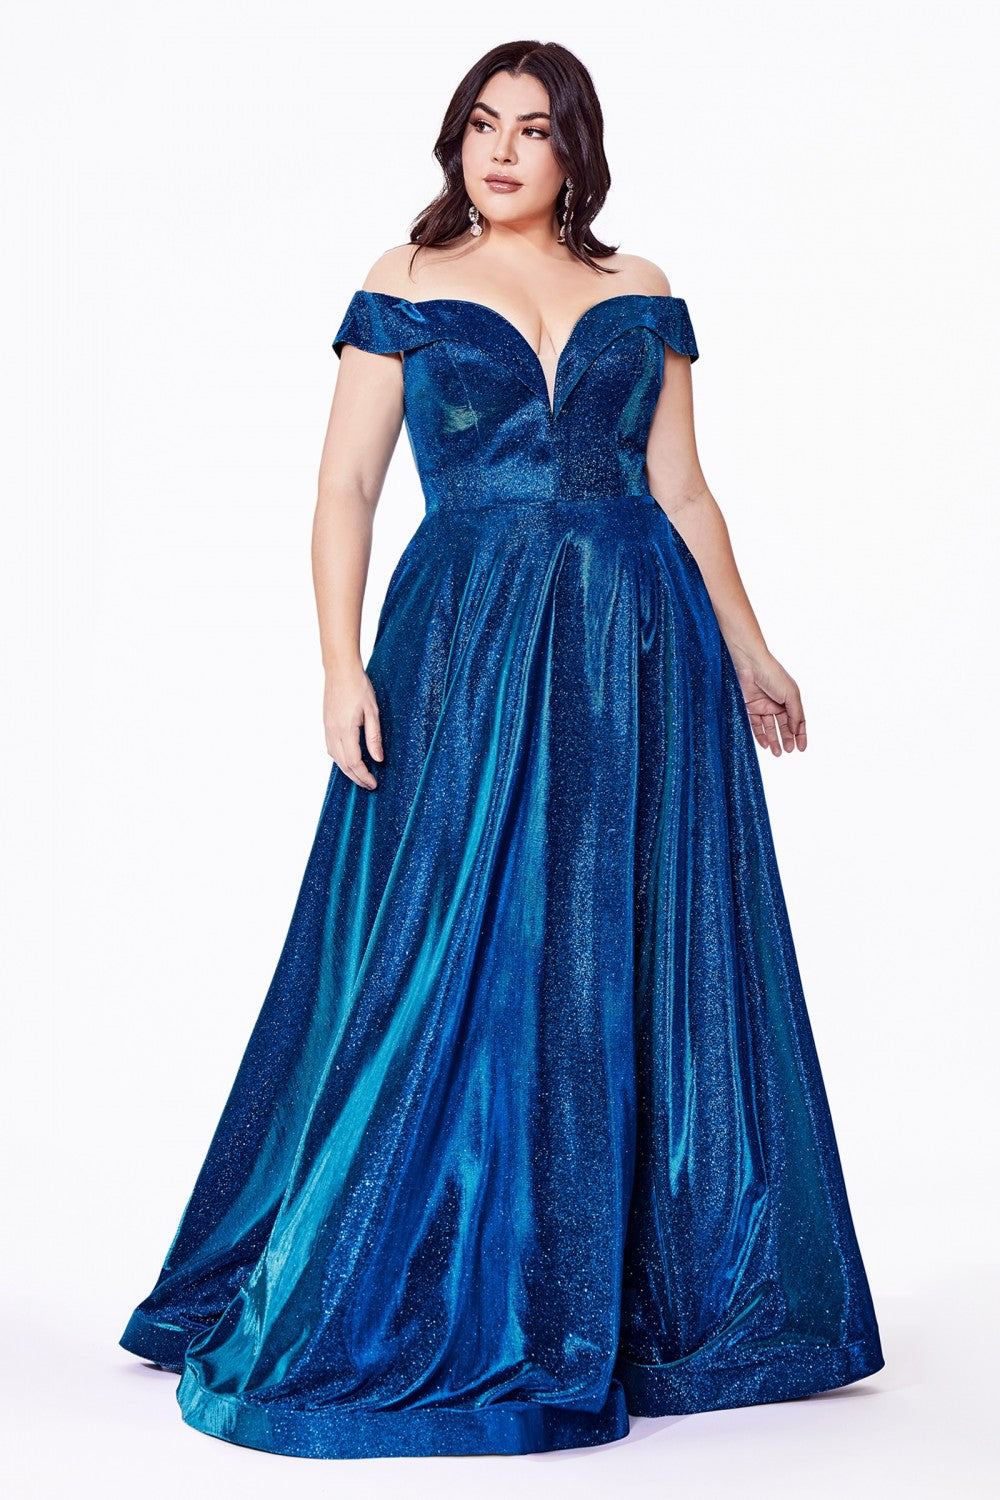 Cinderella Divine Chart I CD CD210C - Off The Shoulder Metallic Glitter A-Line Gown with Sweetheart Neck & Corset Back - Diggz Prom